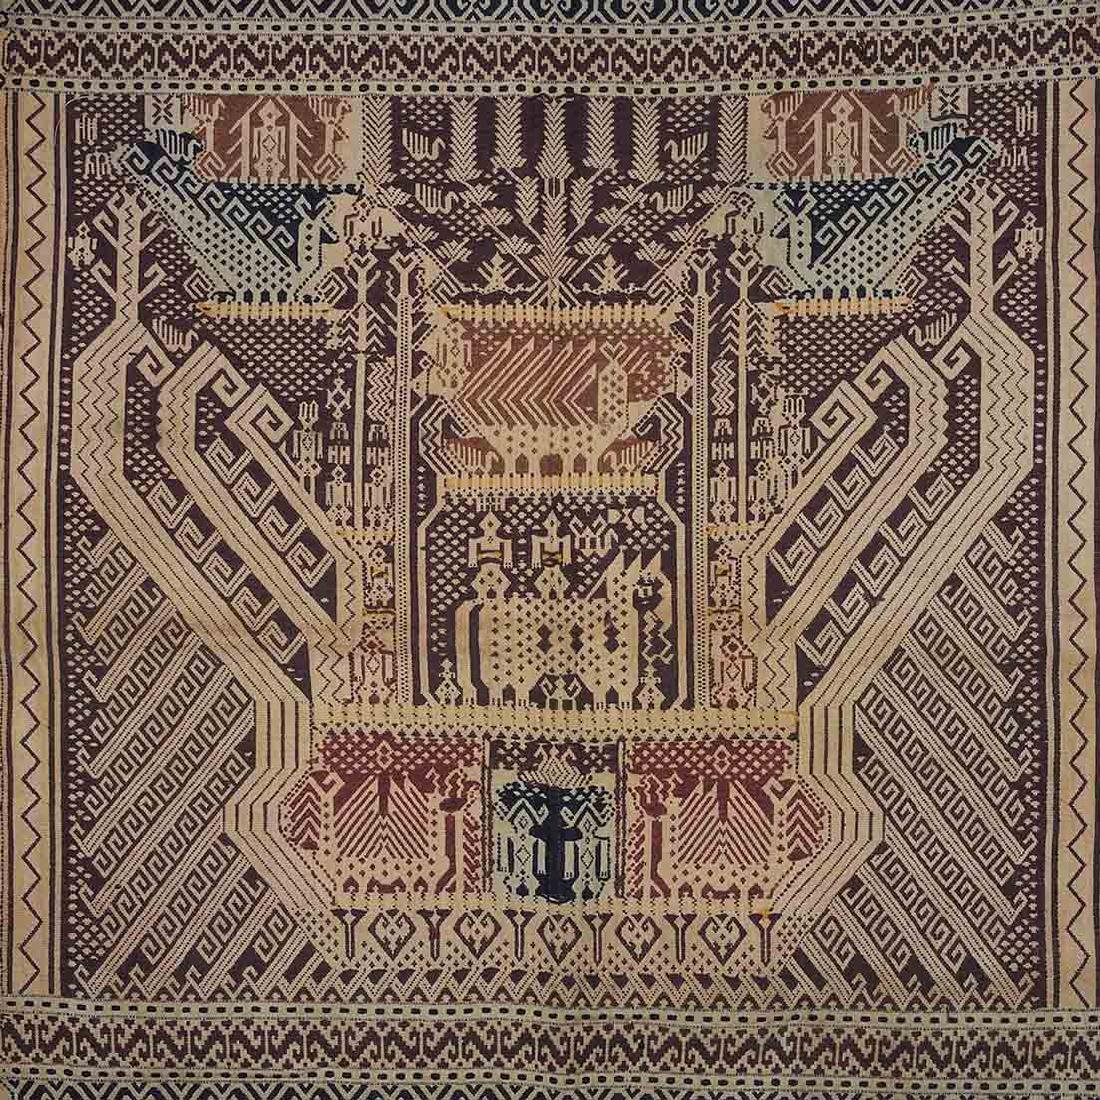 Old Carpet with Typical Lampung Design, Lampung - 2